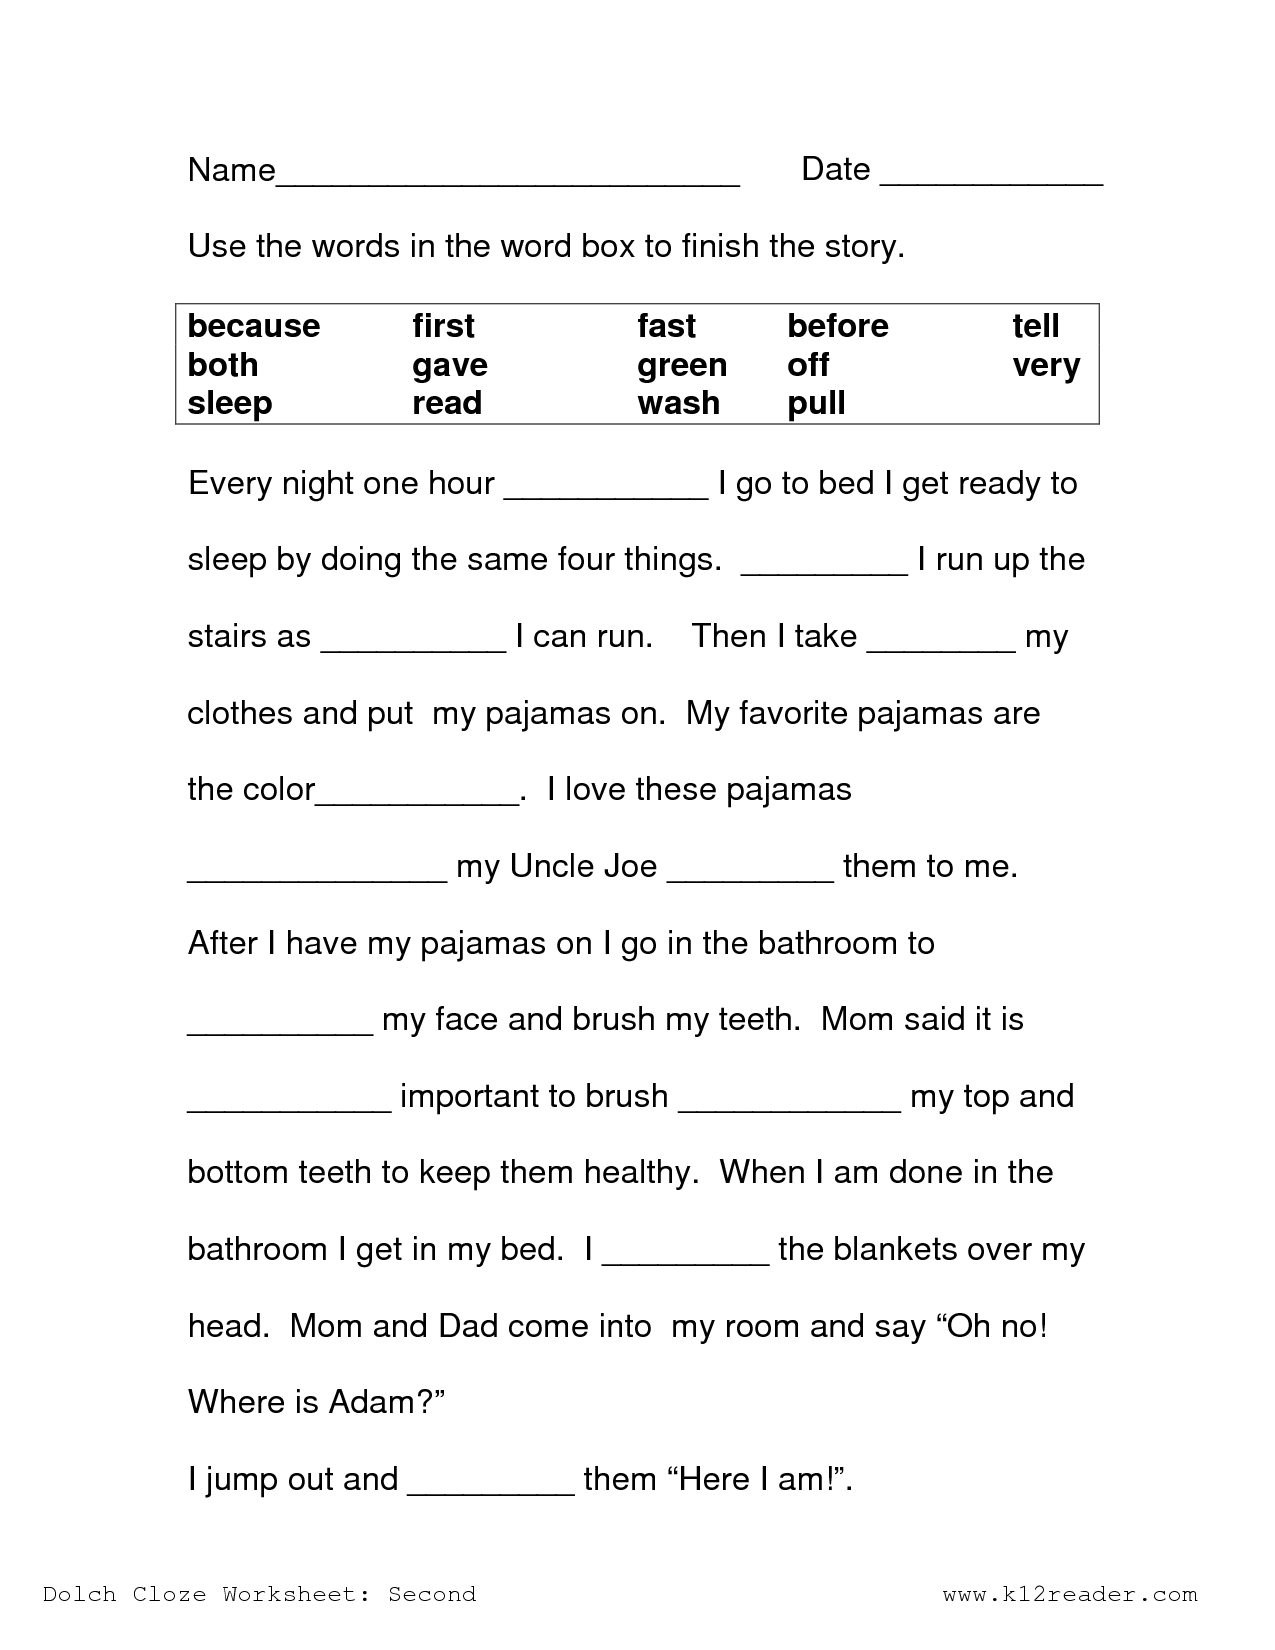 Image Result For Free Cloze Reading Passages 2Nd Grade | Printables - Free Printable Short Stories For 2Nd Graders